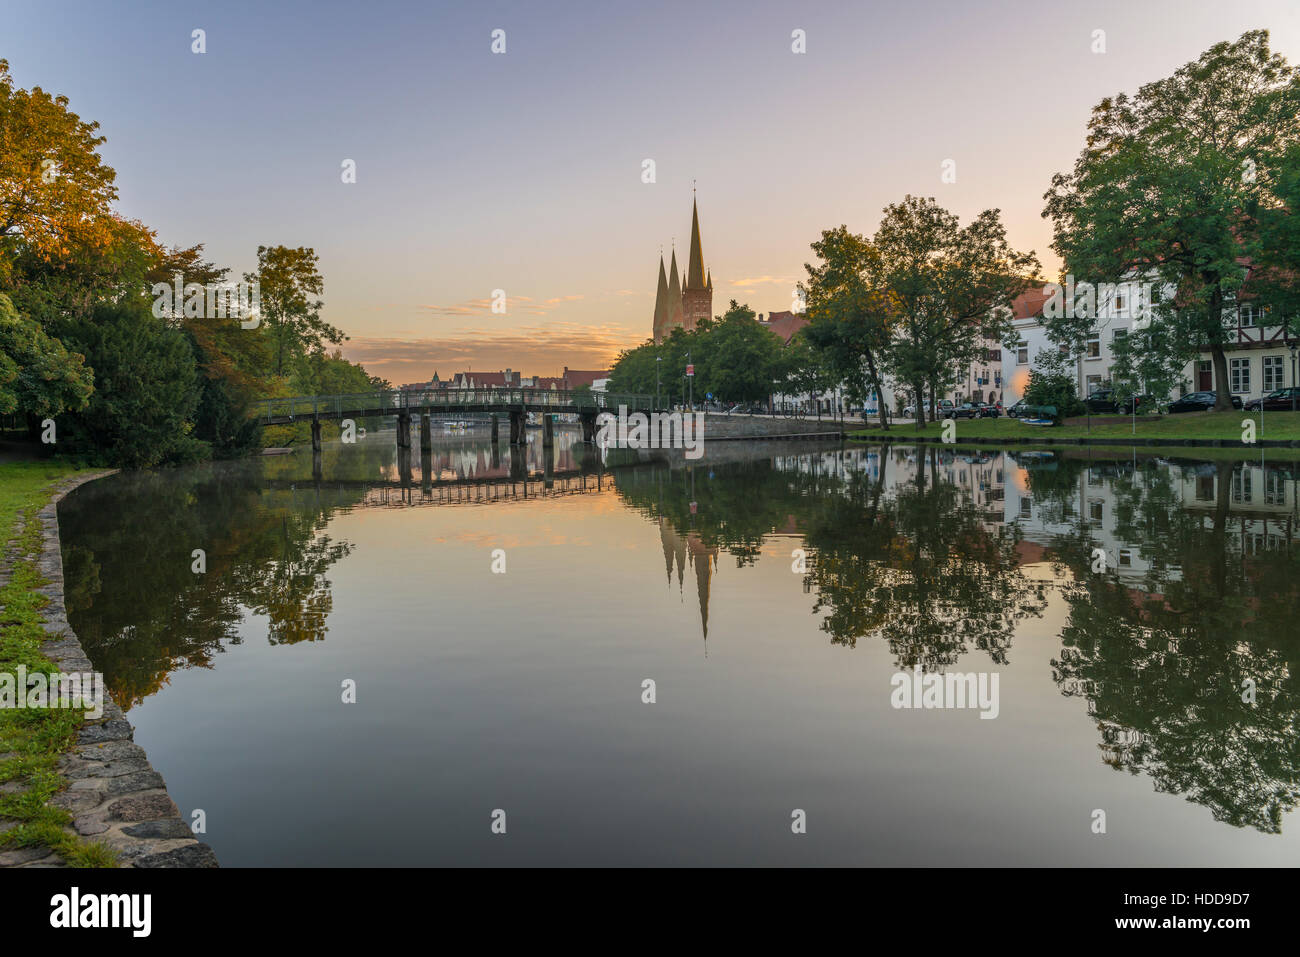 Obertave in Luebeck during sunrise - Stock Image